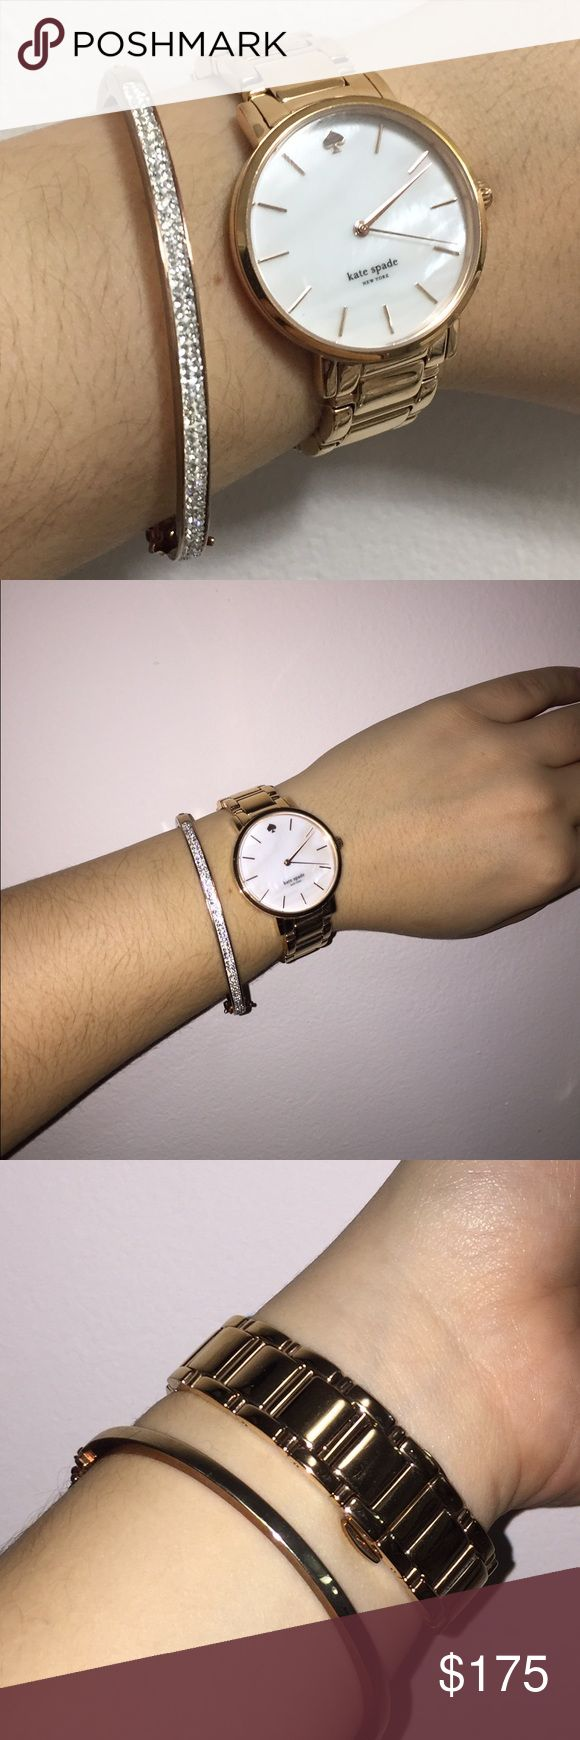 Kate Spade rose gold watch Rock this beautiful Kate Spade rose gold watch. Comes with original Kate Spade box and extra links. Hardly worn. Looking to sell for an Apple Watch! kate spade Jewelry